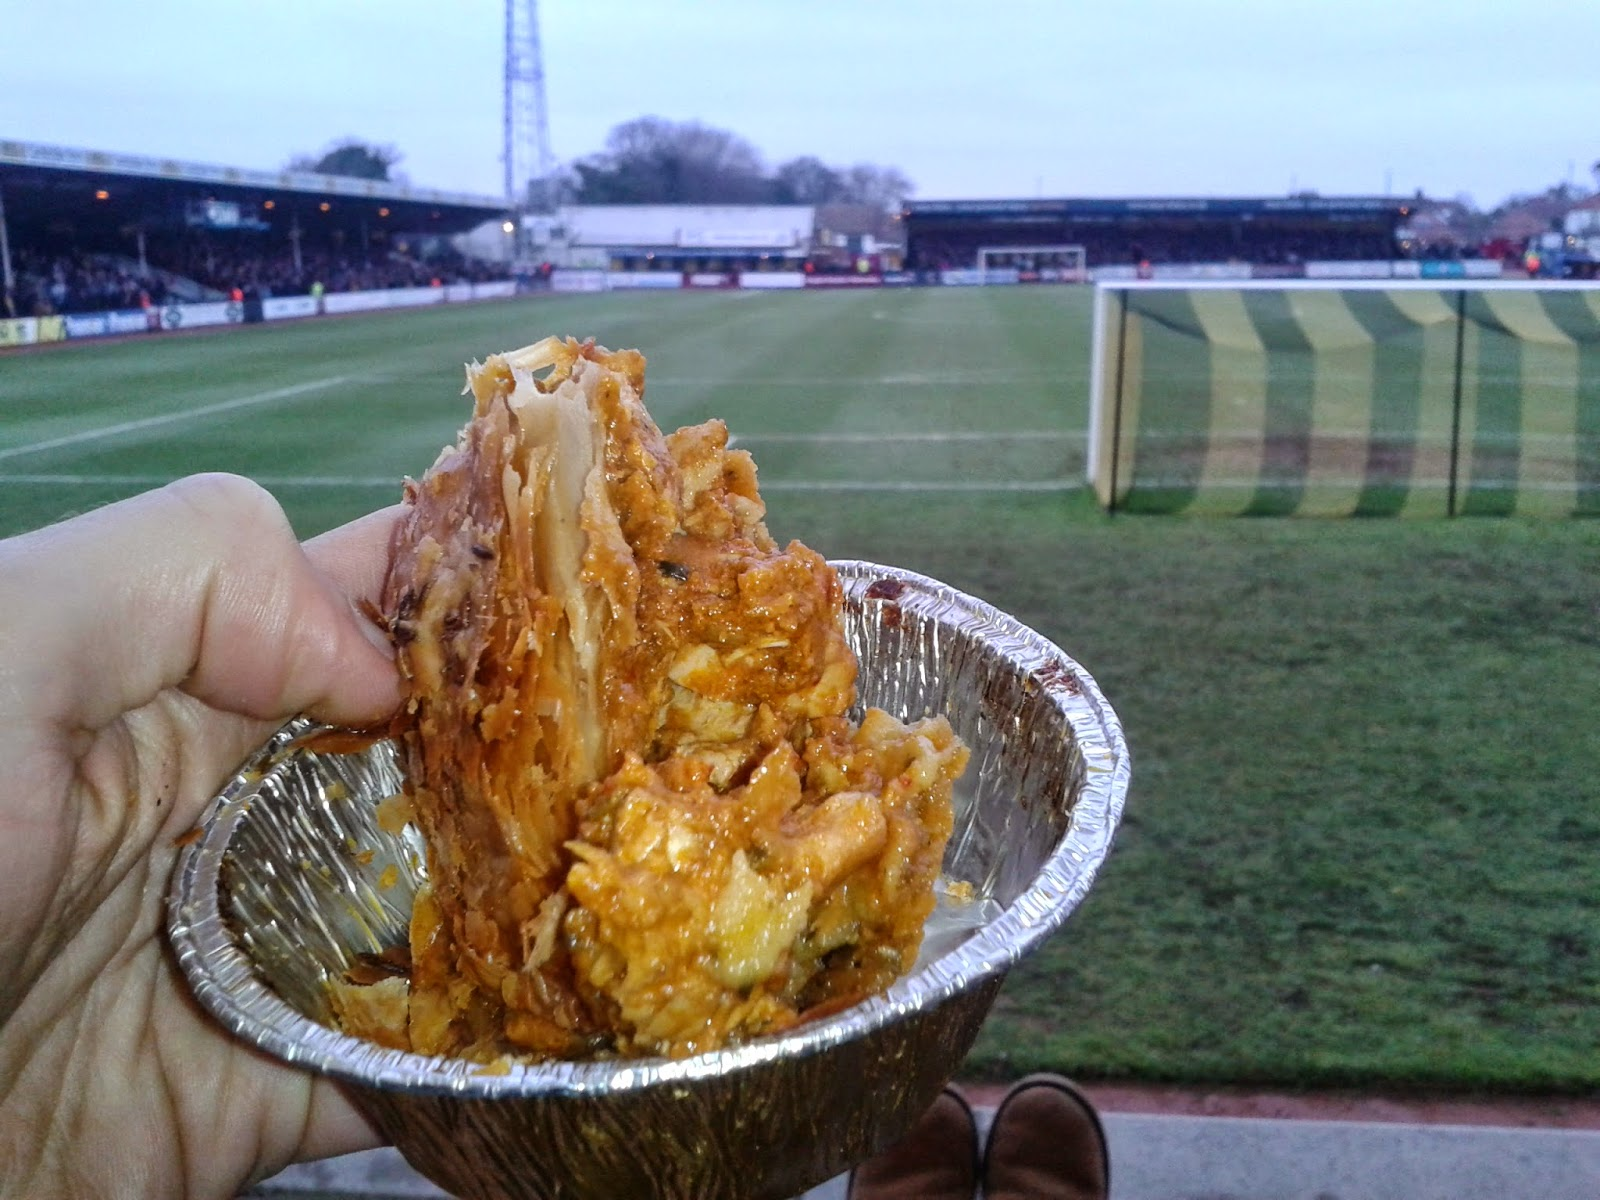 Wrights Chicken Balti Football Pie